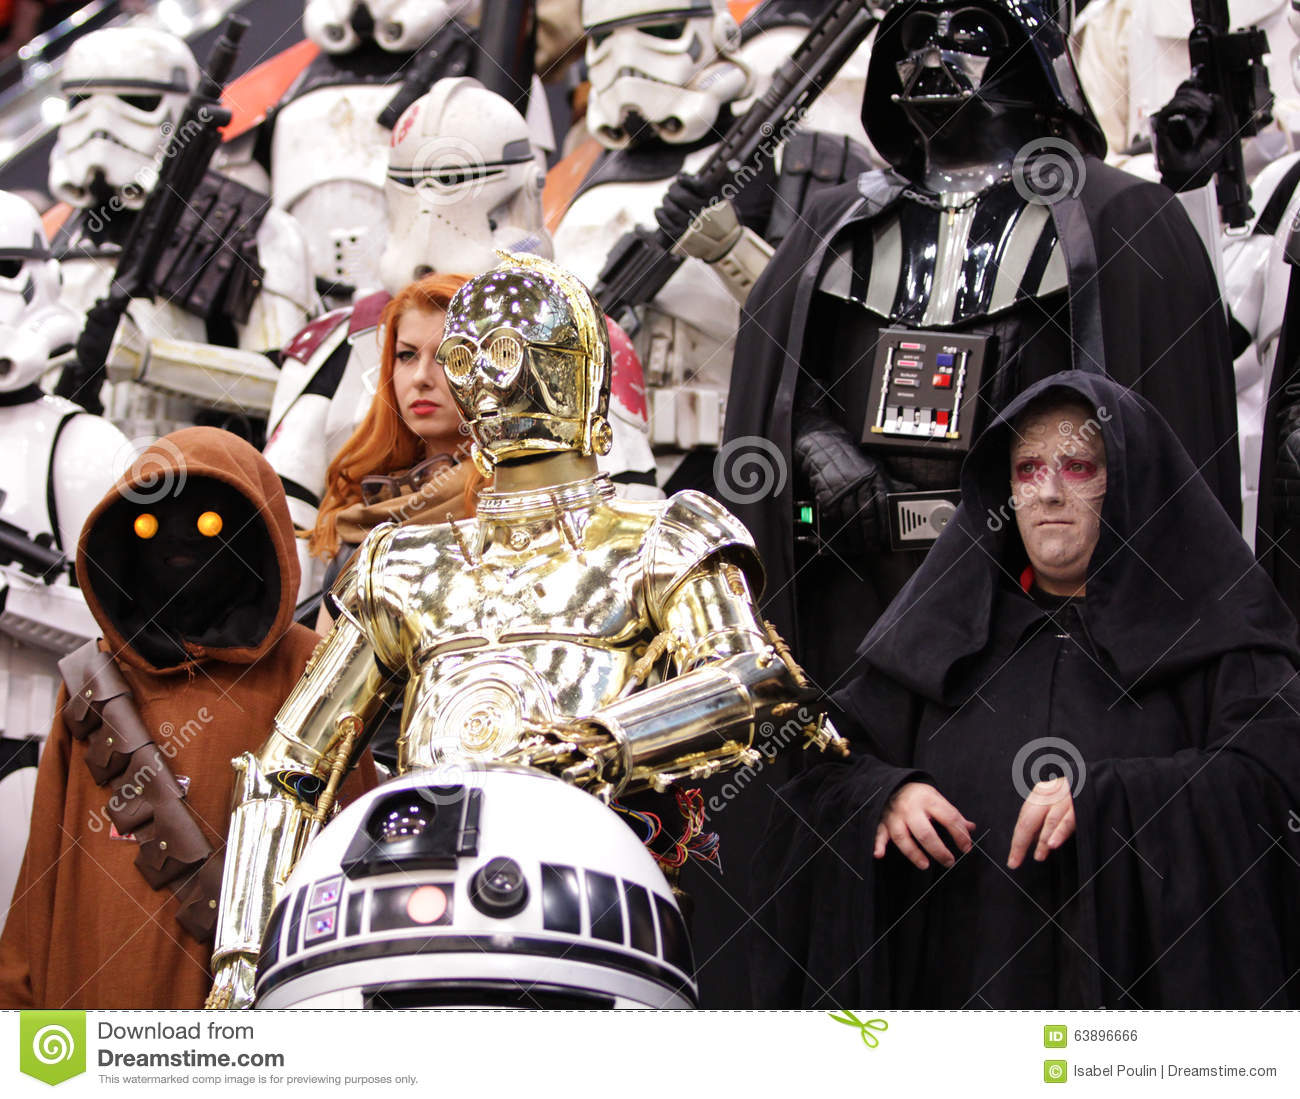 star wars personnage at comic con in montreal editorial photo